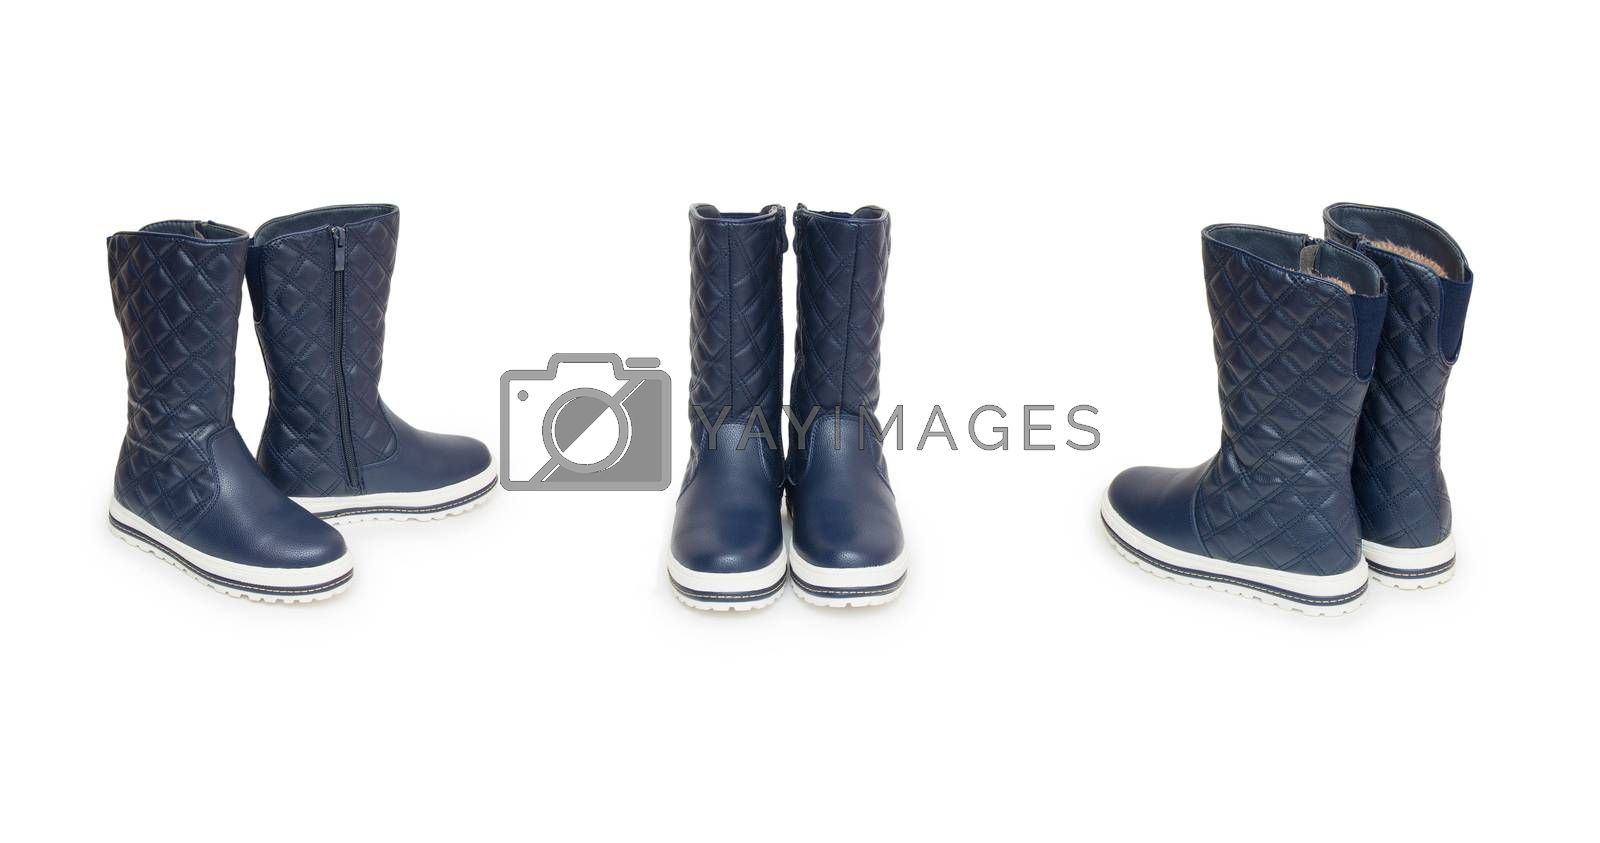 Royalty free image of boots isolated on white background by cocoo